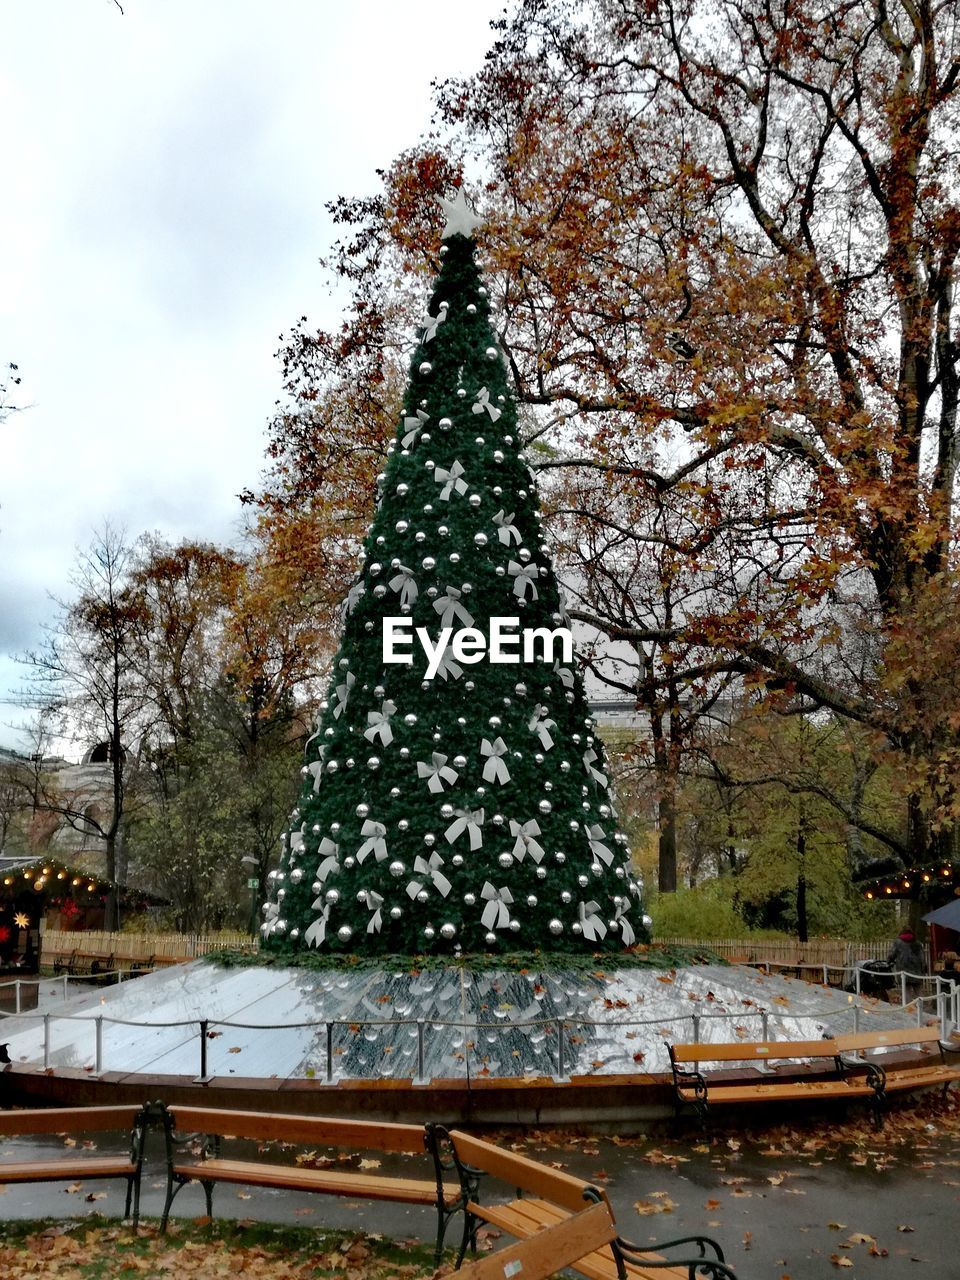 tree, plant, nature, day, christmas tree, growth, sky, outdoors, architecture, christmas, winter, holiday, no people, park, celebration, snow, decoration, park - man made space, change